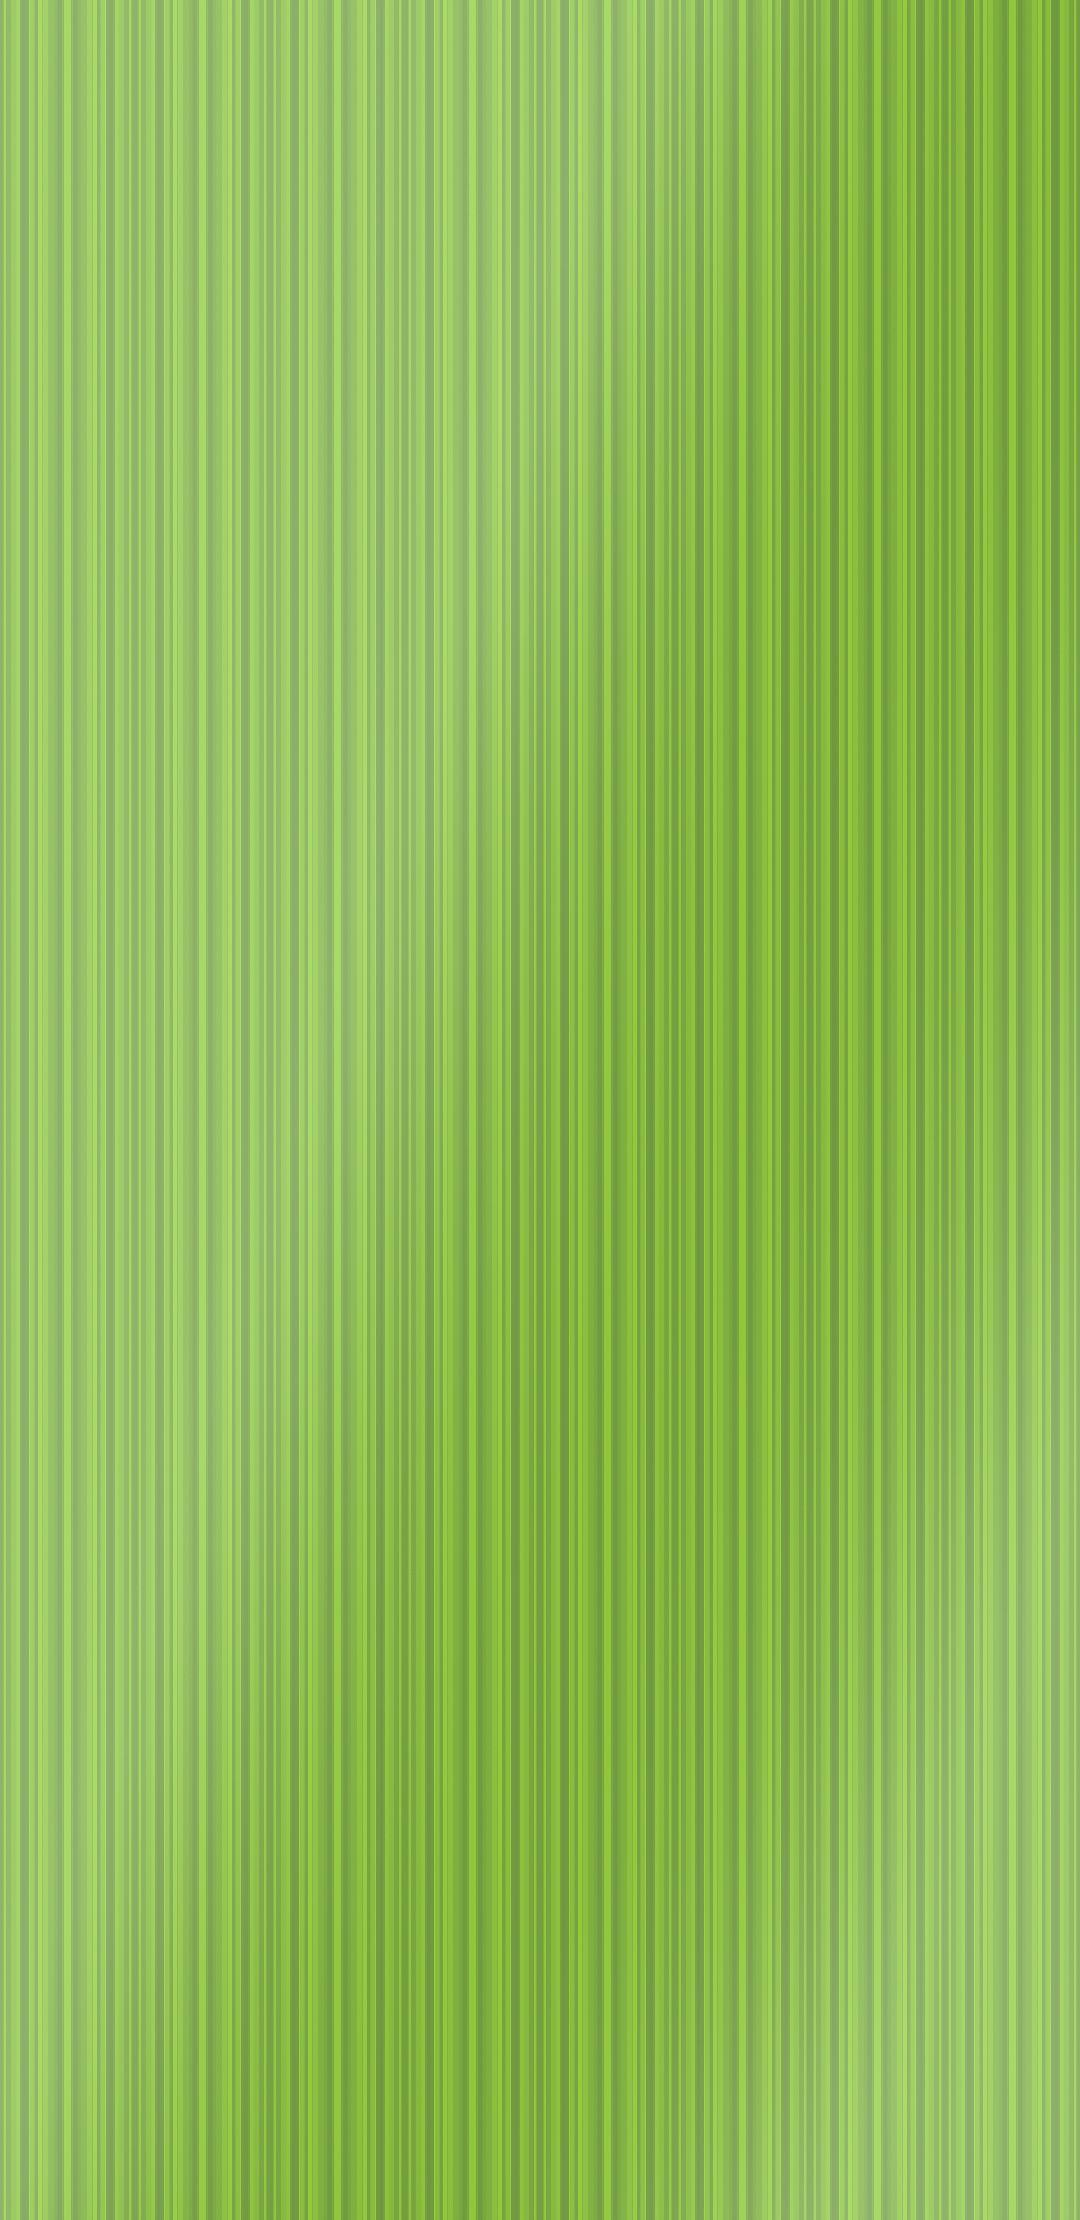 Green stripes – Galaxy infinity display wallpapers – 1080x2220 pixels